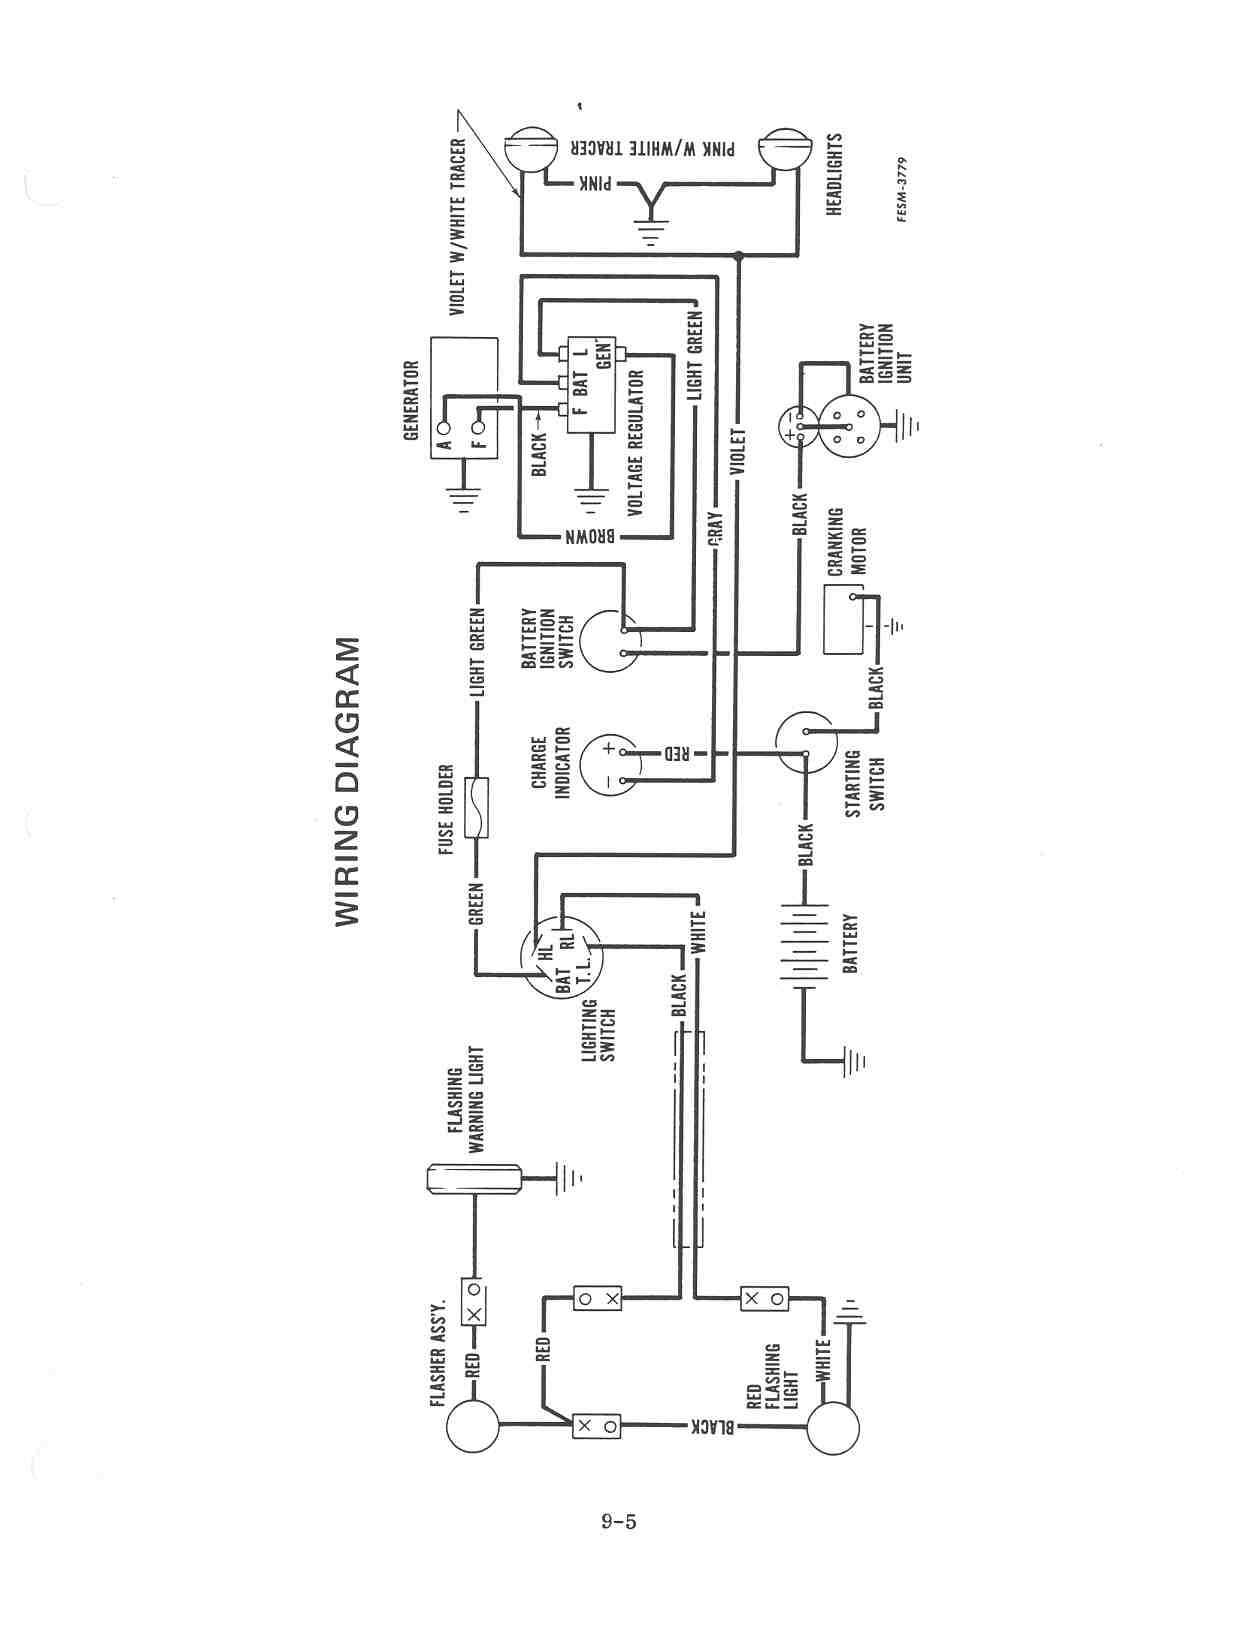 farmall international 560 tractor wiring diagram free picture - wiring  diagram center launch-boat - launch-boat.tatikids.it  tatikids.it